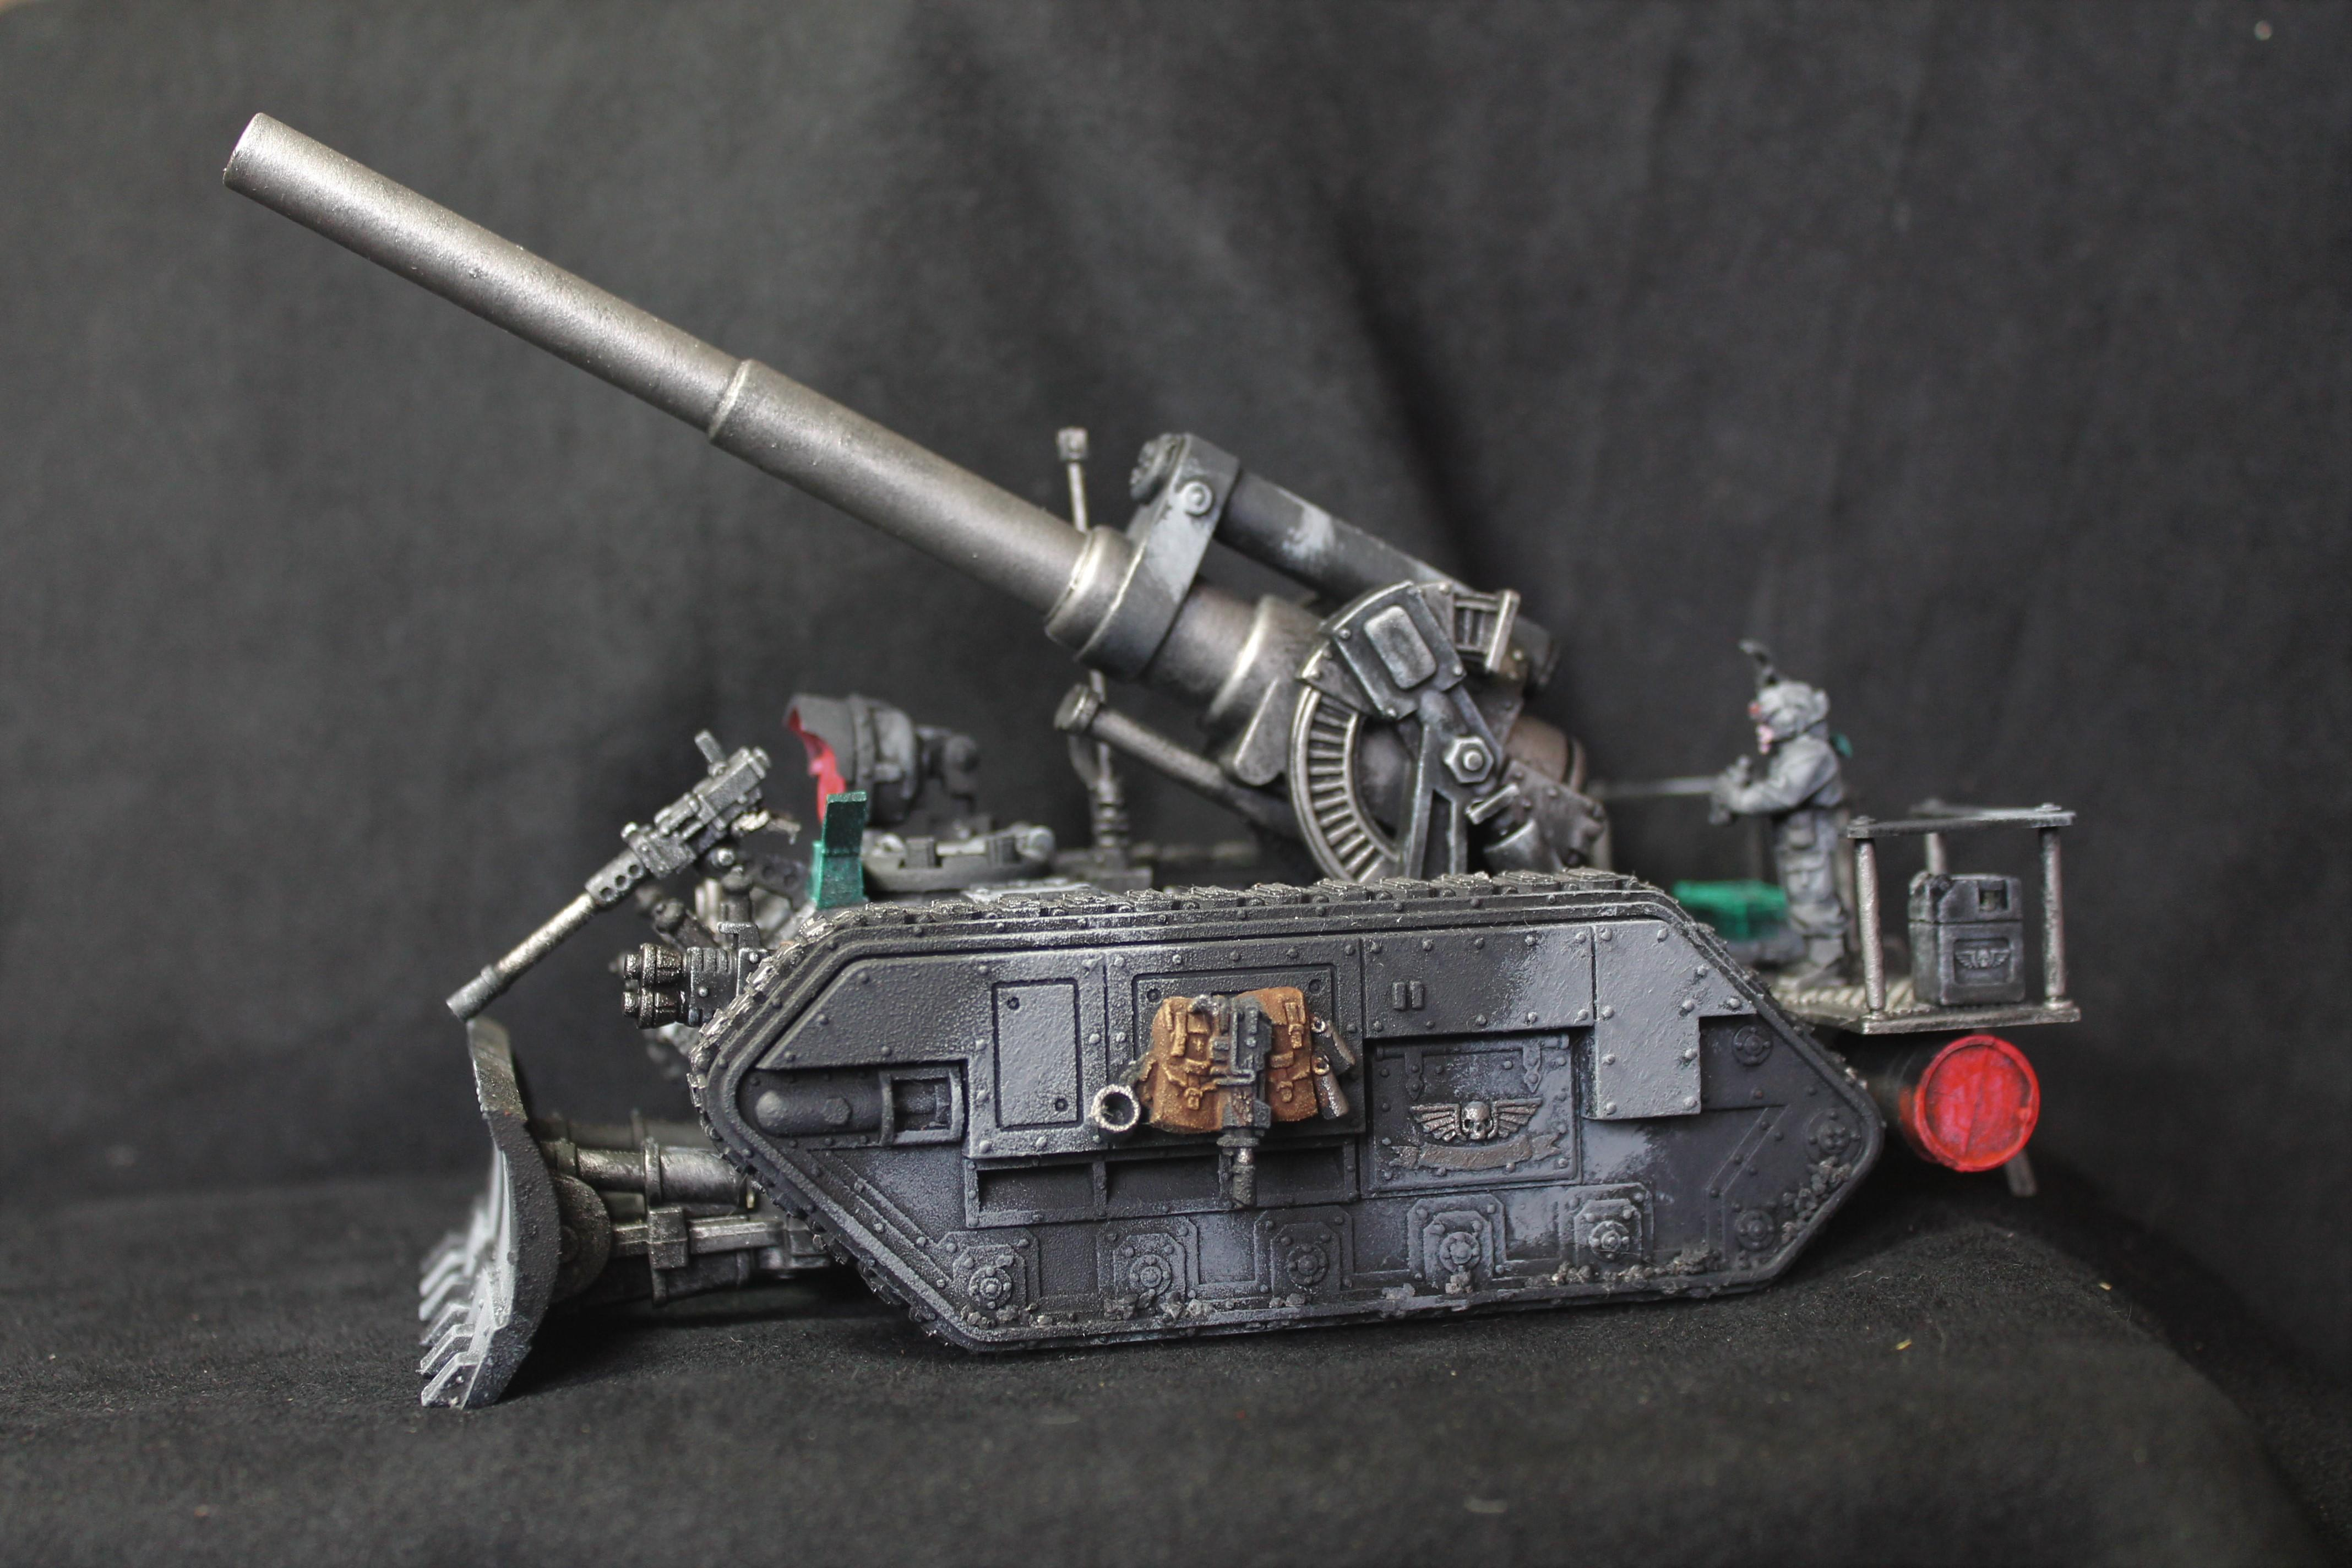 Astra Militarum, Basilisk, Cadian Shock Troops, Cadians, Eastern Front, Guard, Heretics, Imperial, Imperial Guard, Kronstadt, Militia, Planetary Defence Force, Red Army, Renegades, Renegades And Heretics